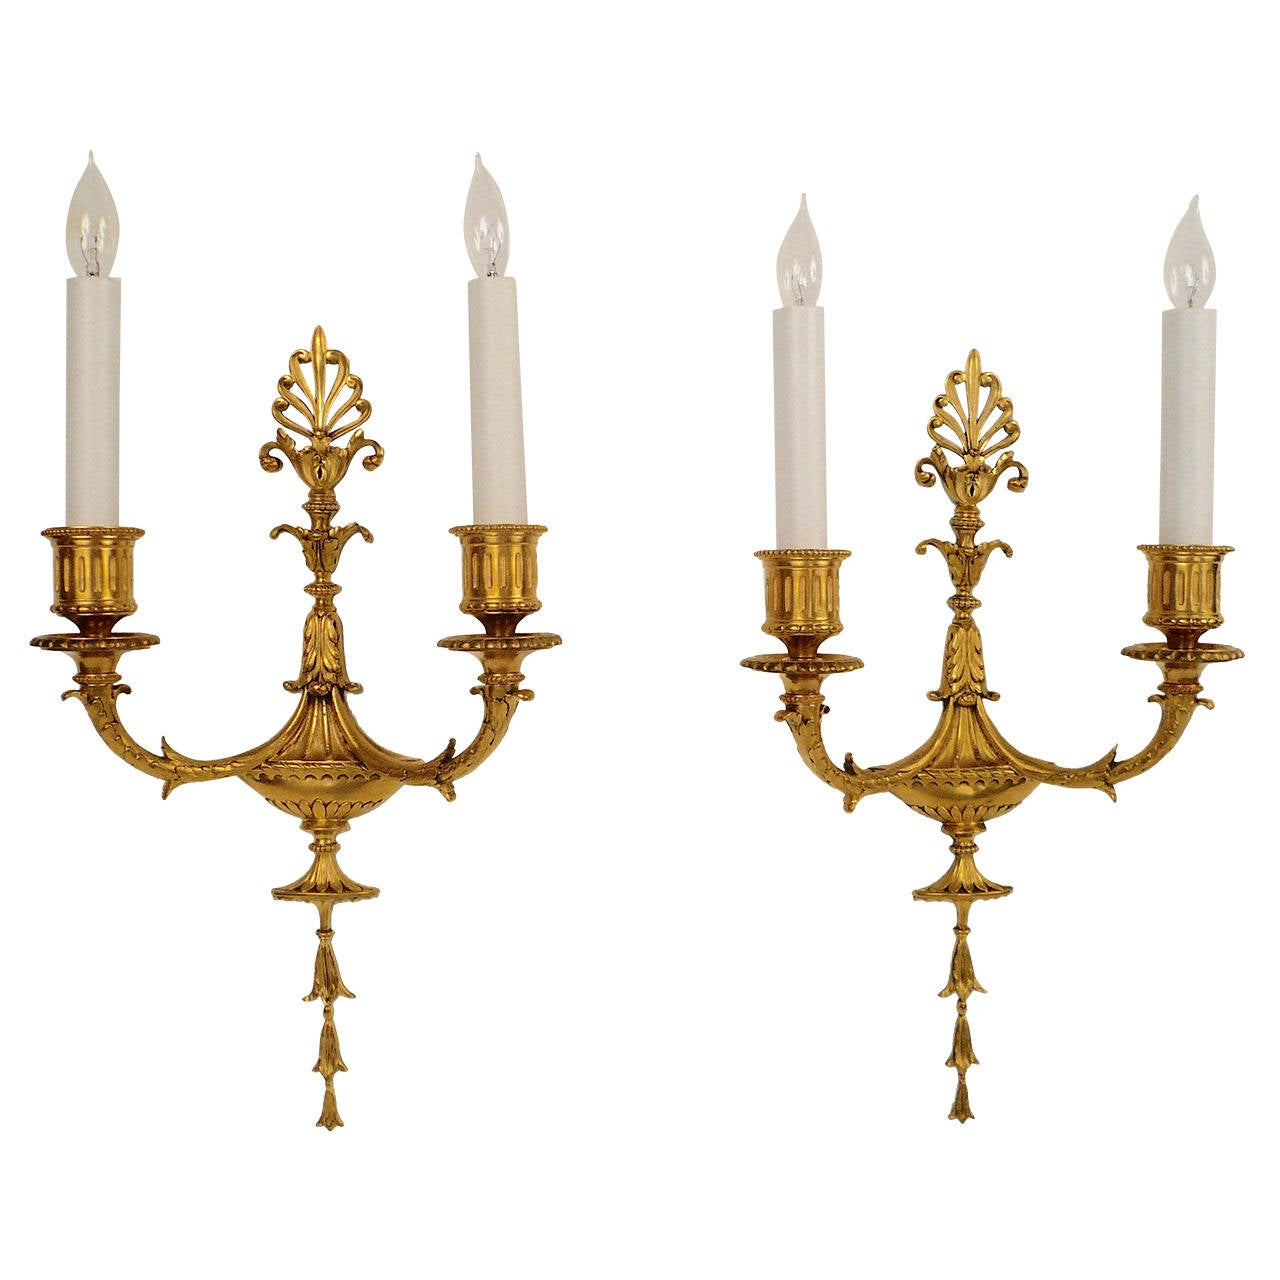 Pair of Adam Style Two-Light Gilt Bronze Sconces by E.F. Caldwell